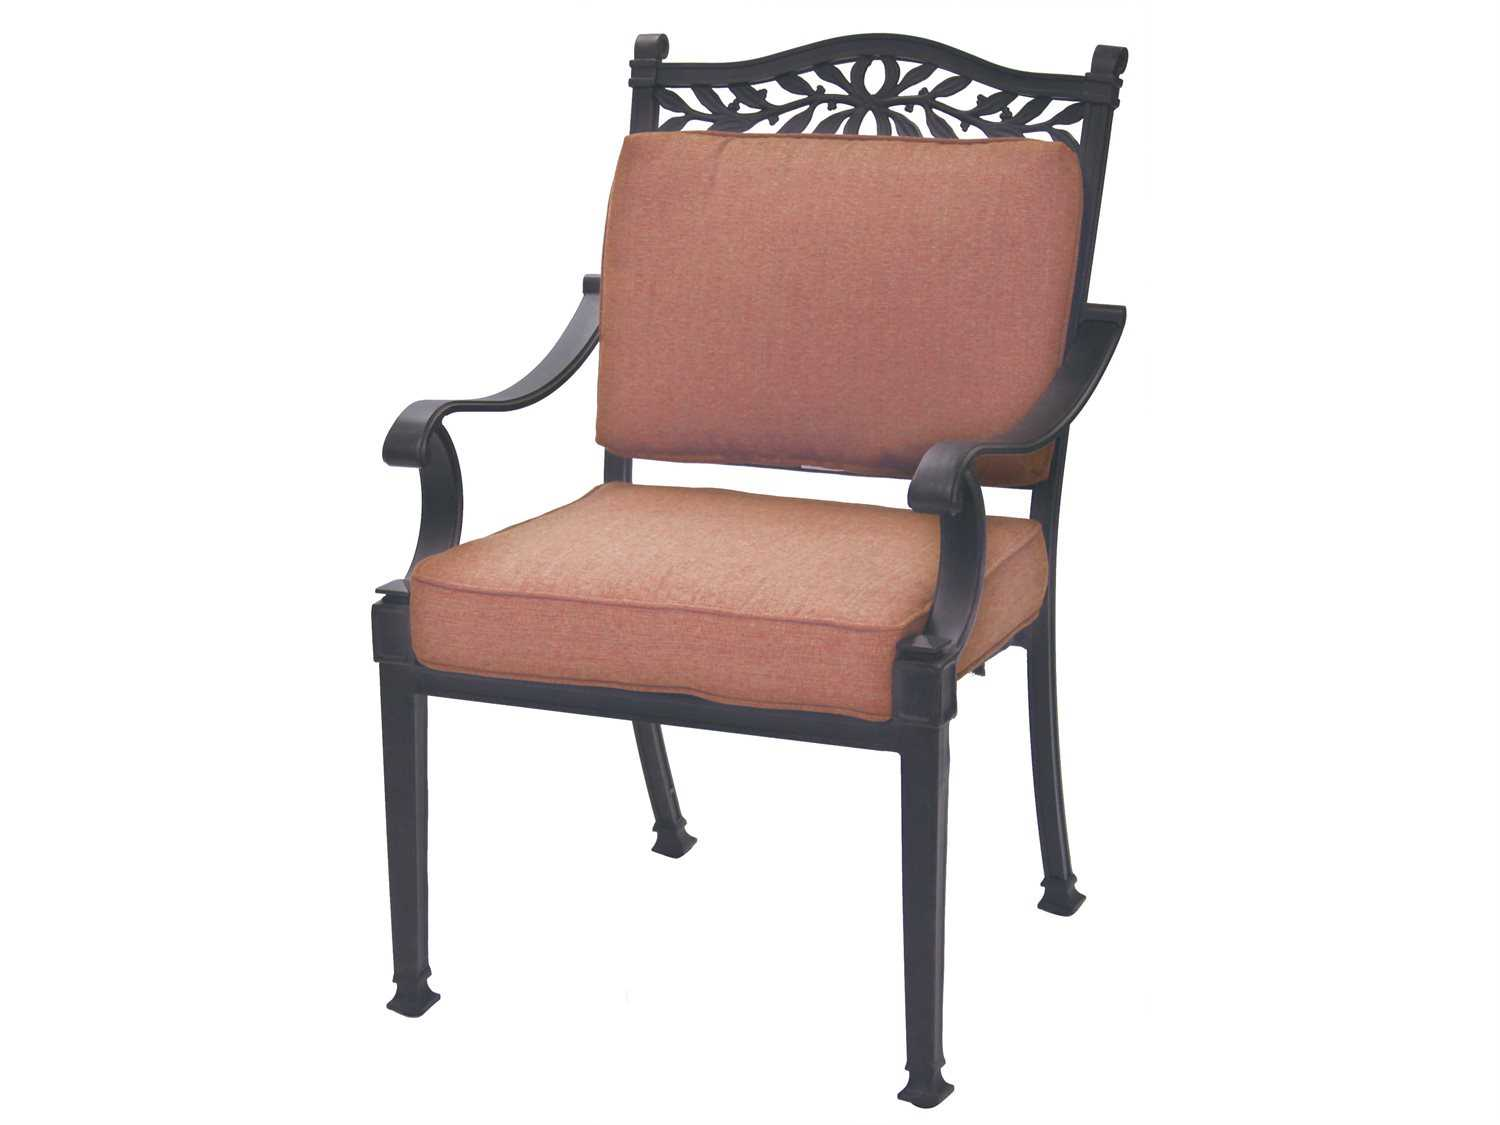 Darlee Outdoor Living Standard Charleston Replacement